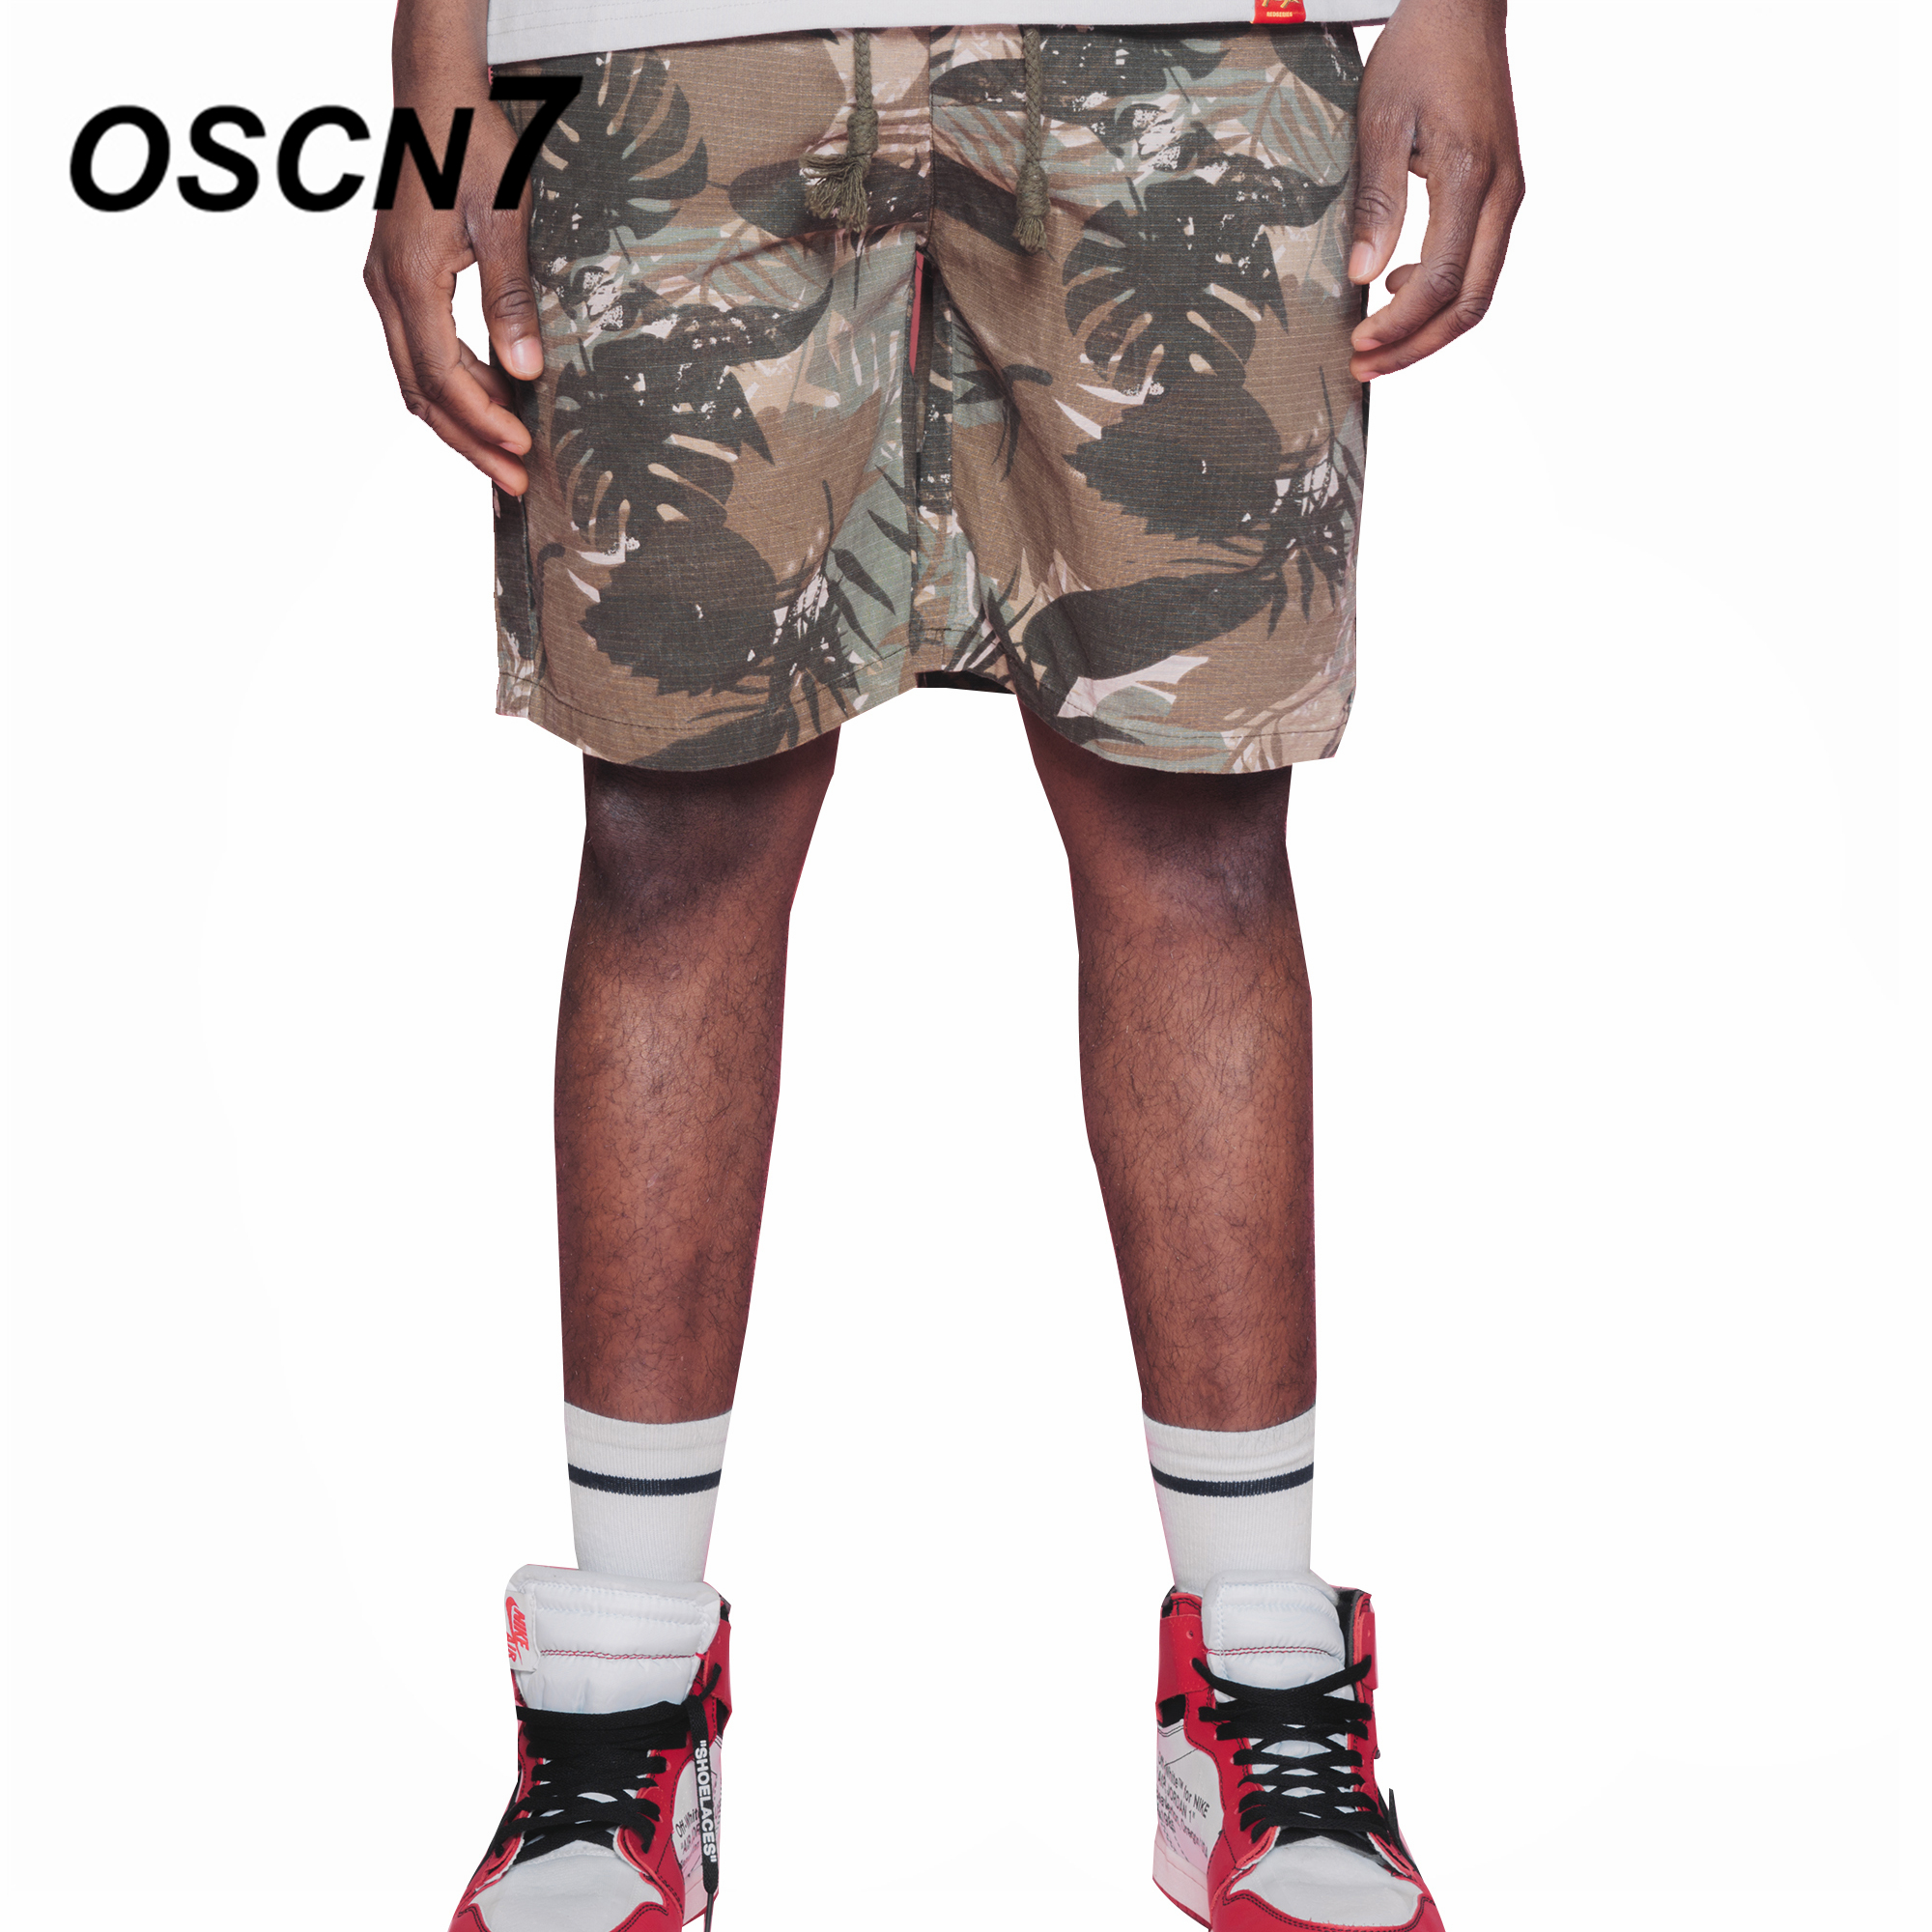 OSCN7 Printed Shorts Men Fashion 2018 Summer New Leisure Beach Mens Shorts Harajuku Short Pants D808